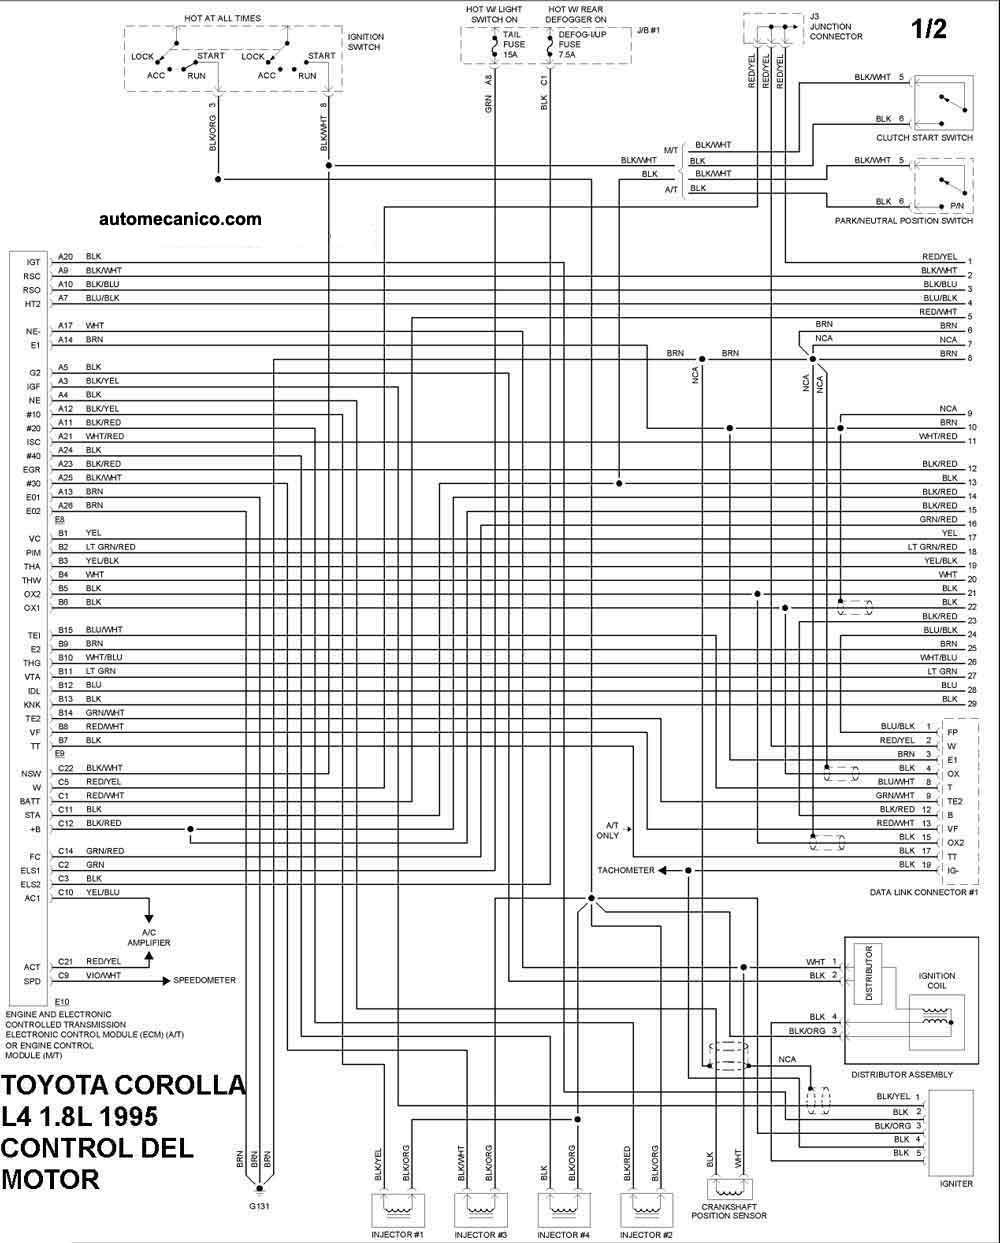 toyota 1 8l engine diagram tm 7210  diy 1999 toyota corolla ve 1zzfe engine alternator  diy 1999 toyota corolla ve 1zzfe engine